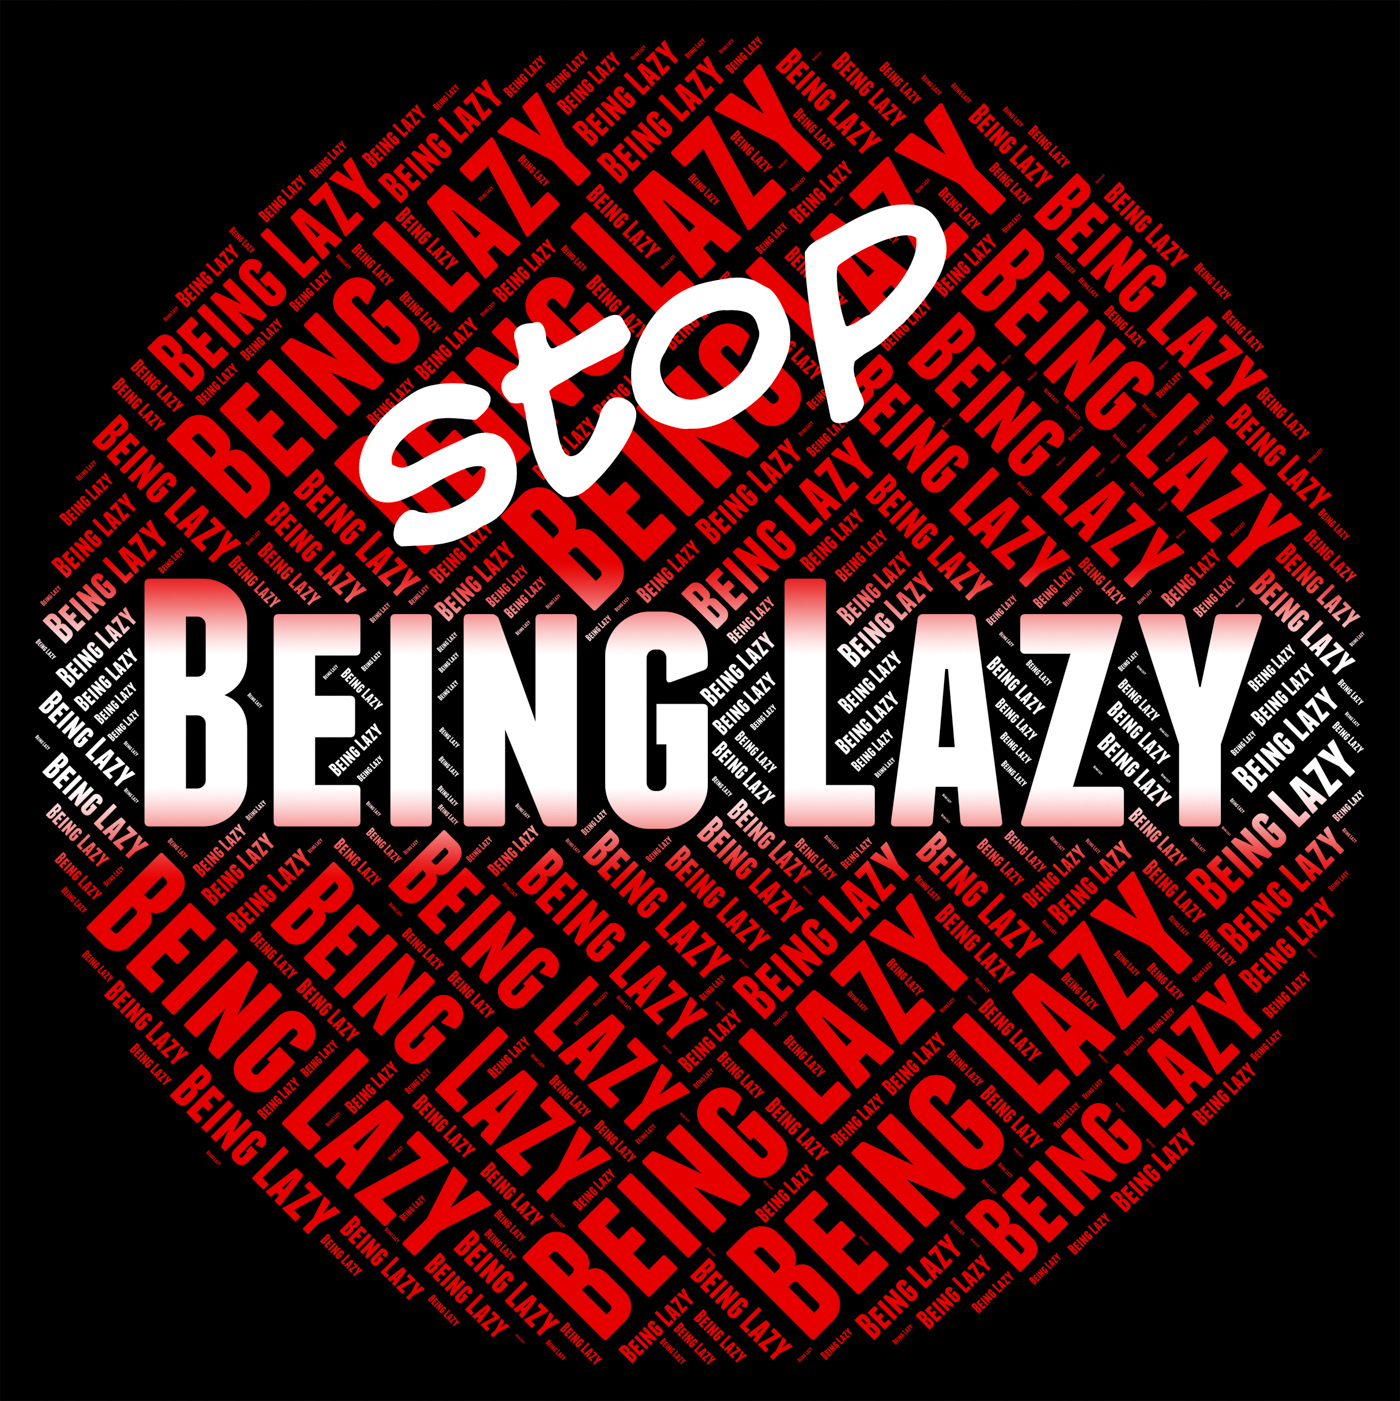 Stop Being Lazy Represents Warning Sign And Caution, Caution, Restriction, Warning, Stopsign, HQ Photo